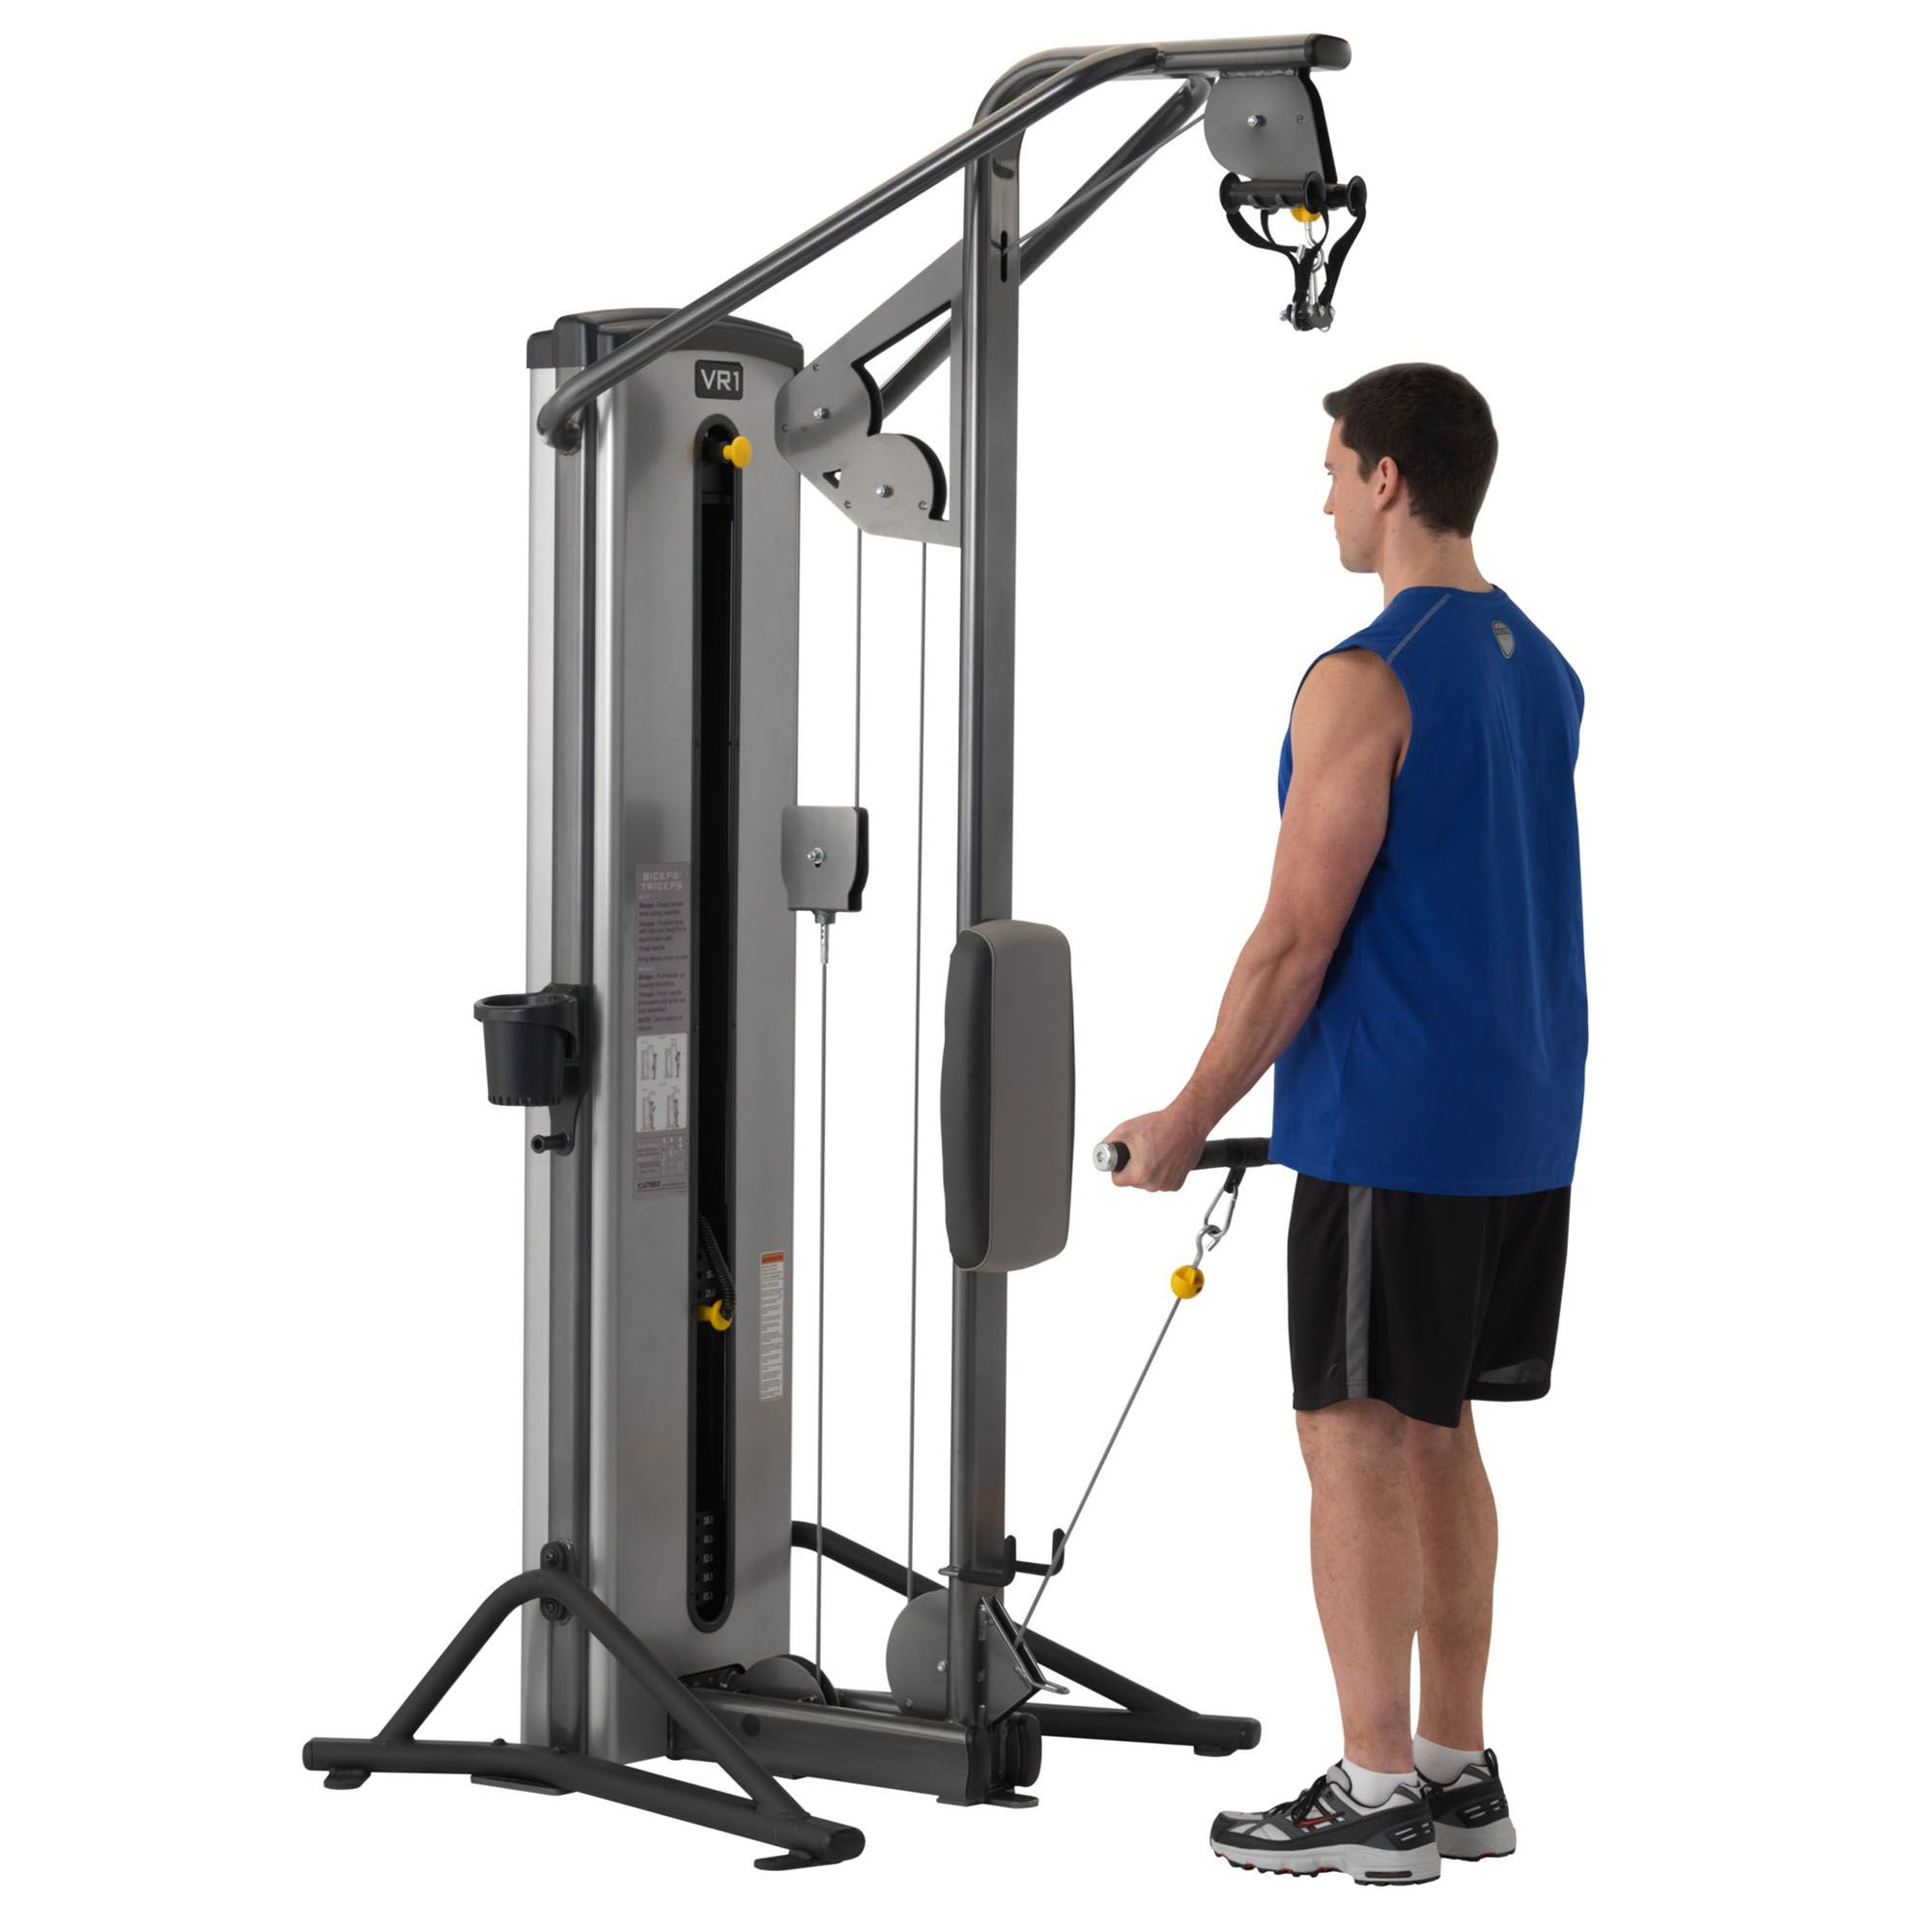 How Much Is A Modular Home Cybex Vr1 Duals Biceps And Triceps